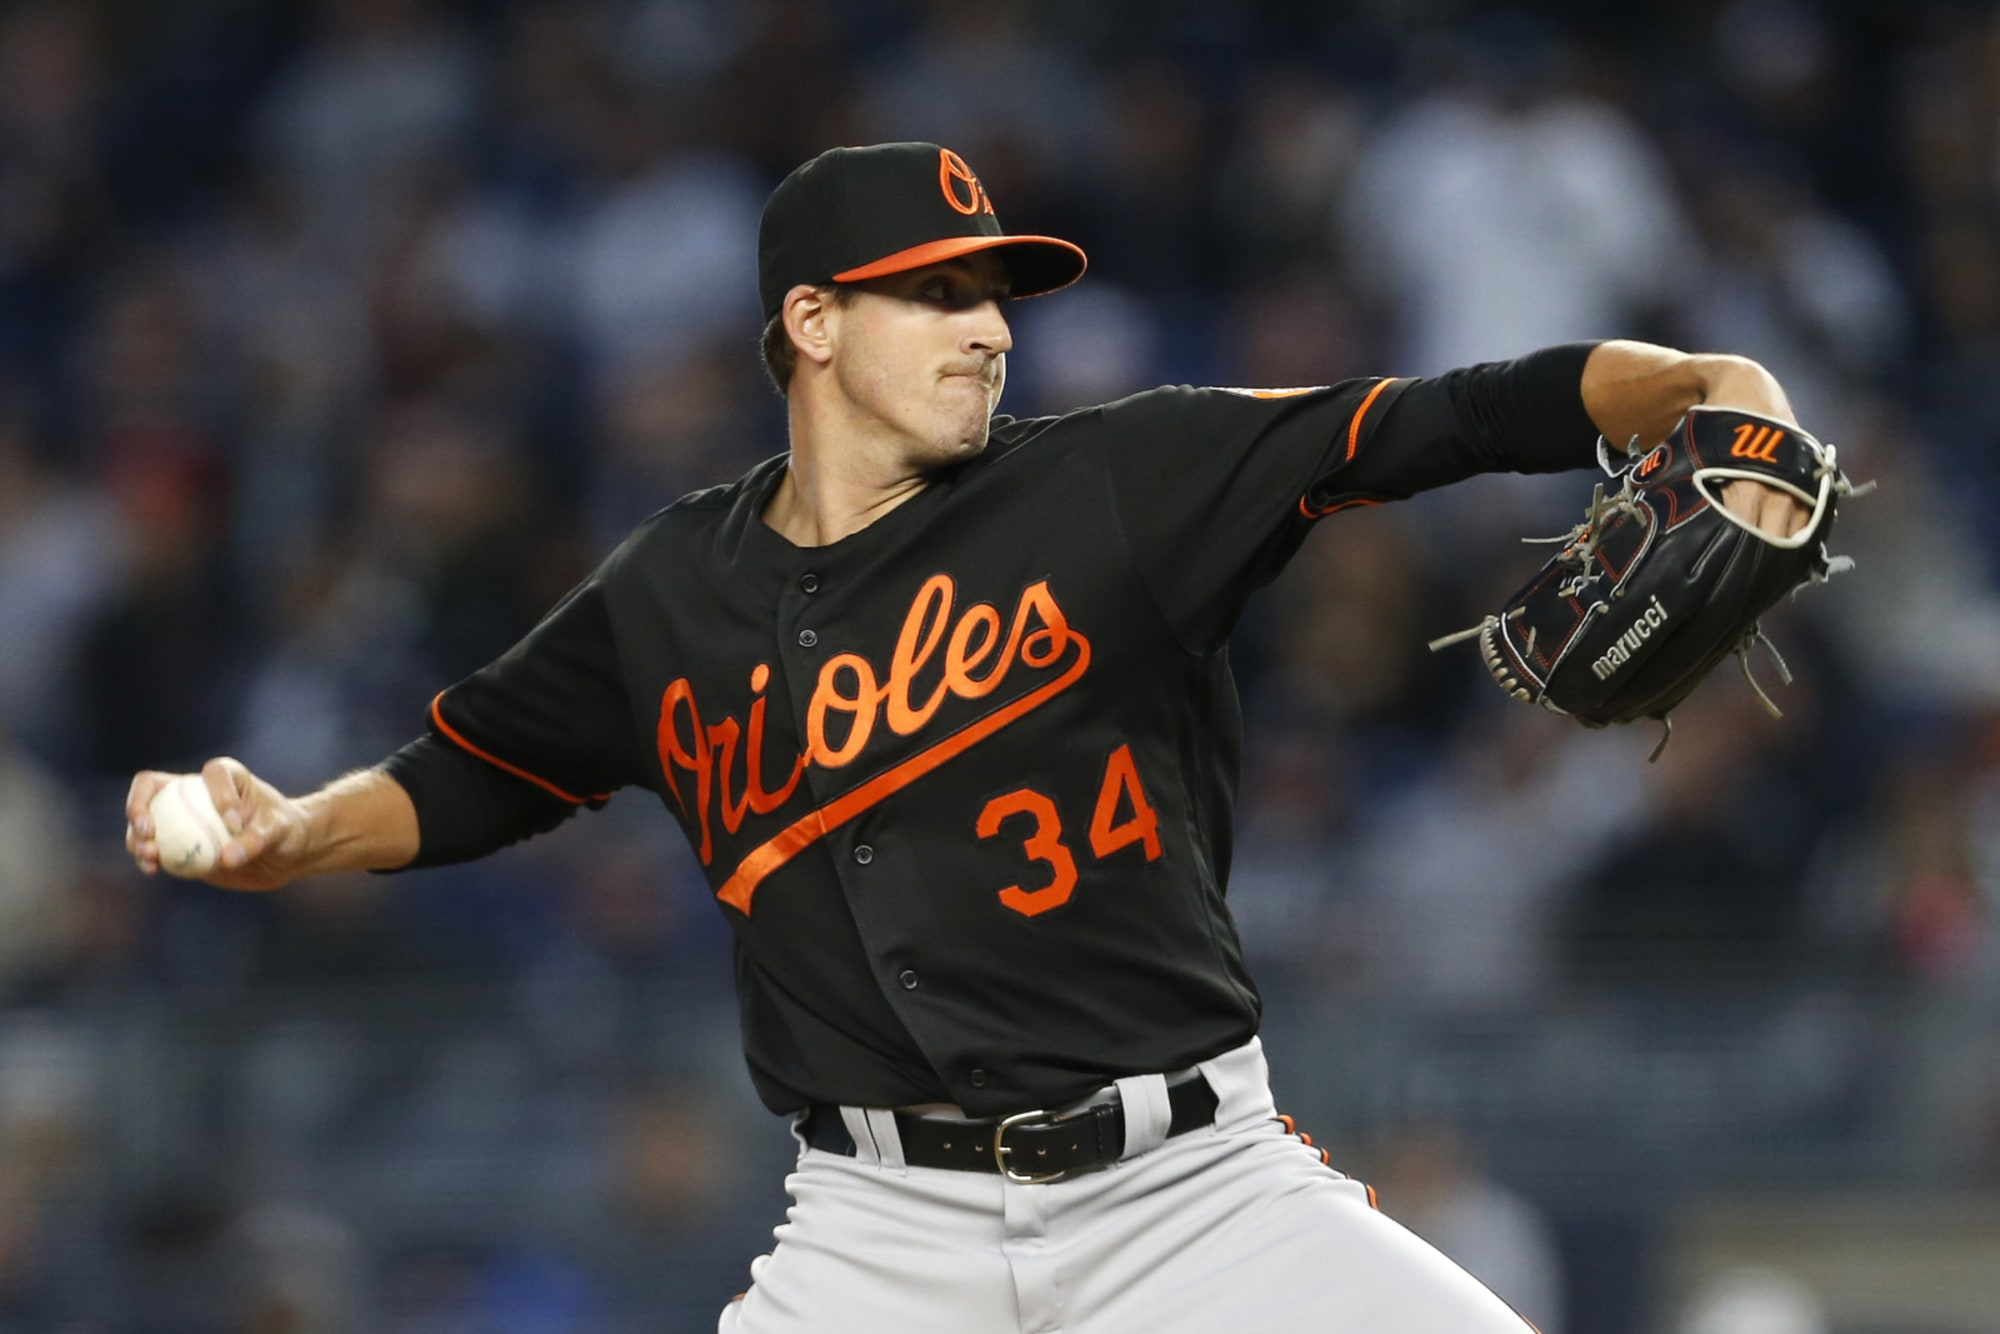 Atlanta Braves Newest Starter Kevin Gausman What To Expect When He Pitches